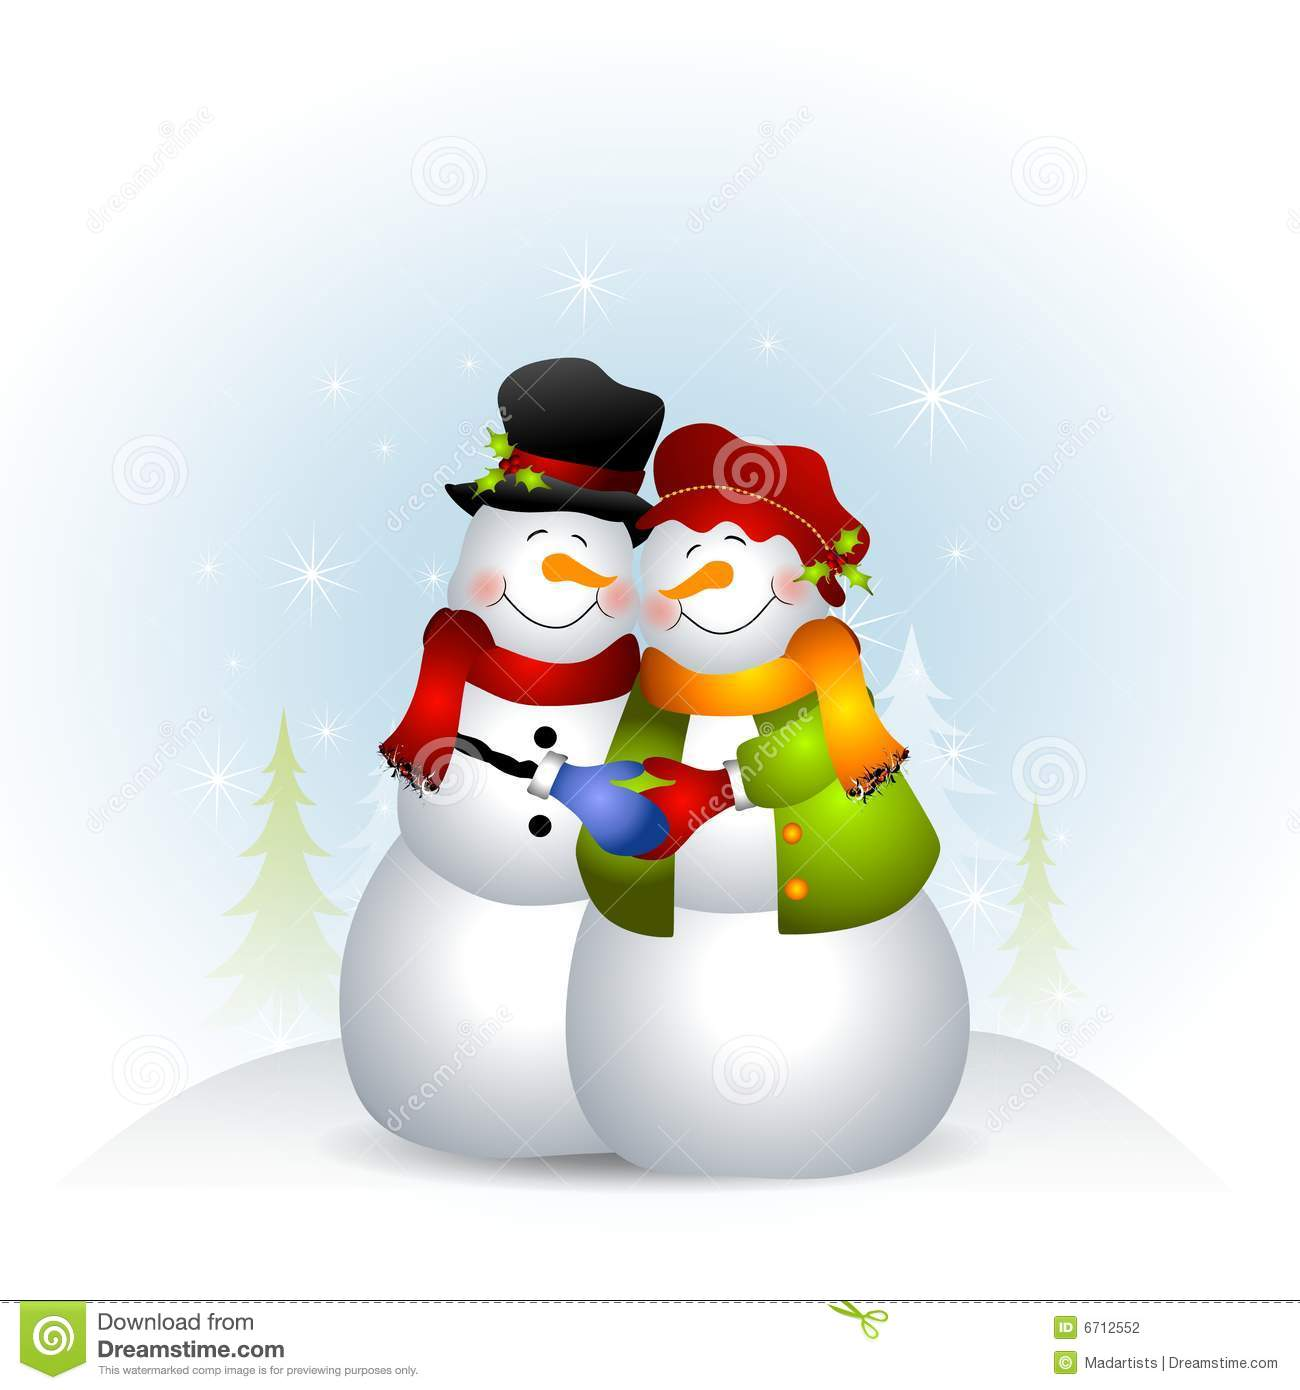 snow woman clipart - photo #34